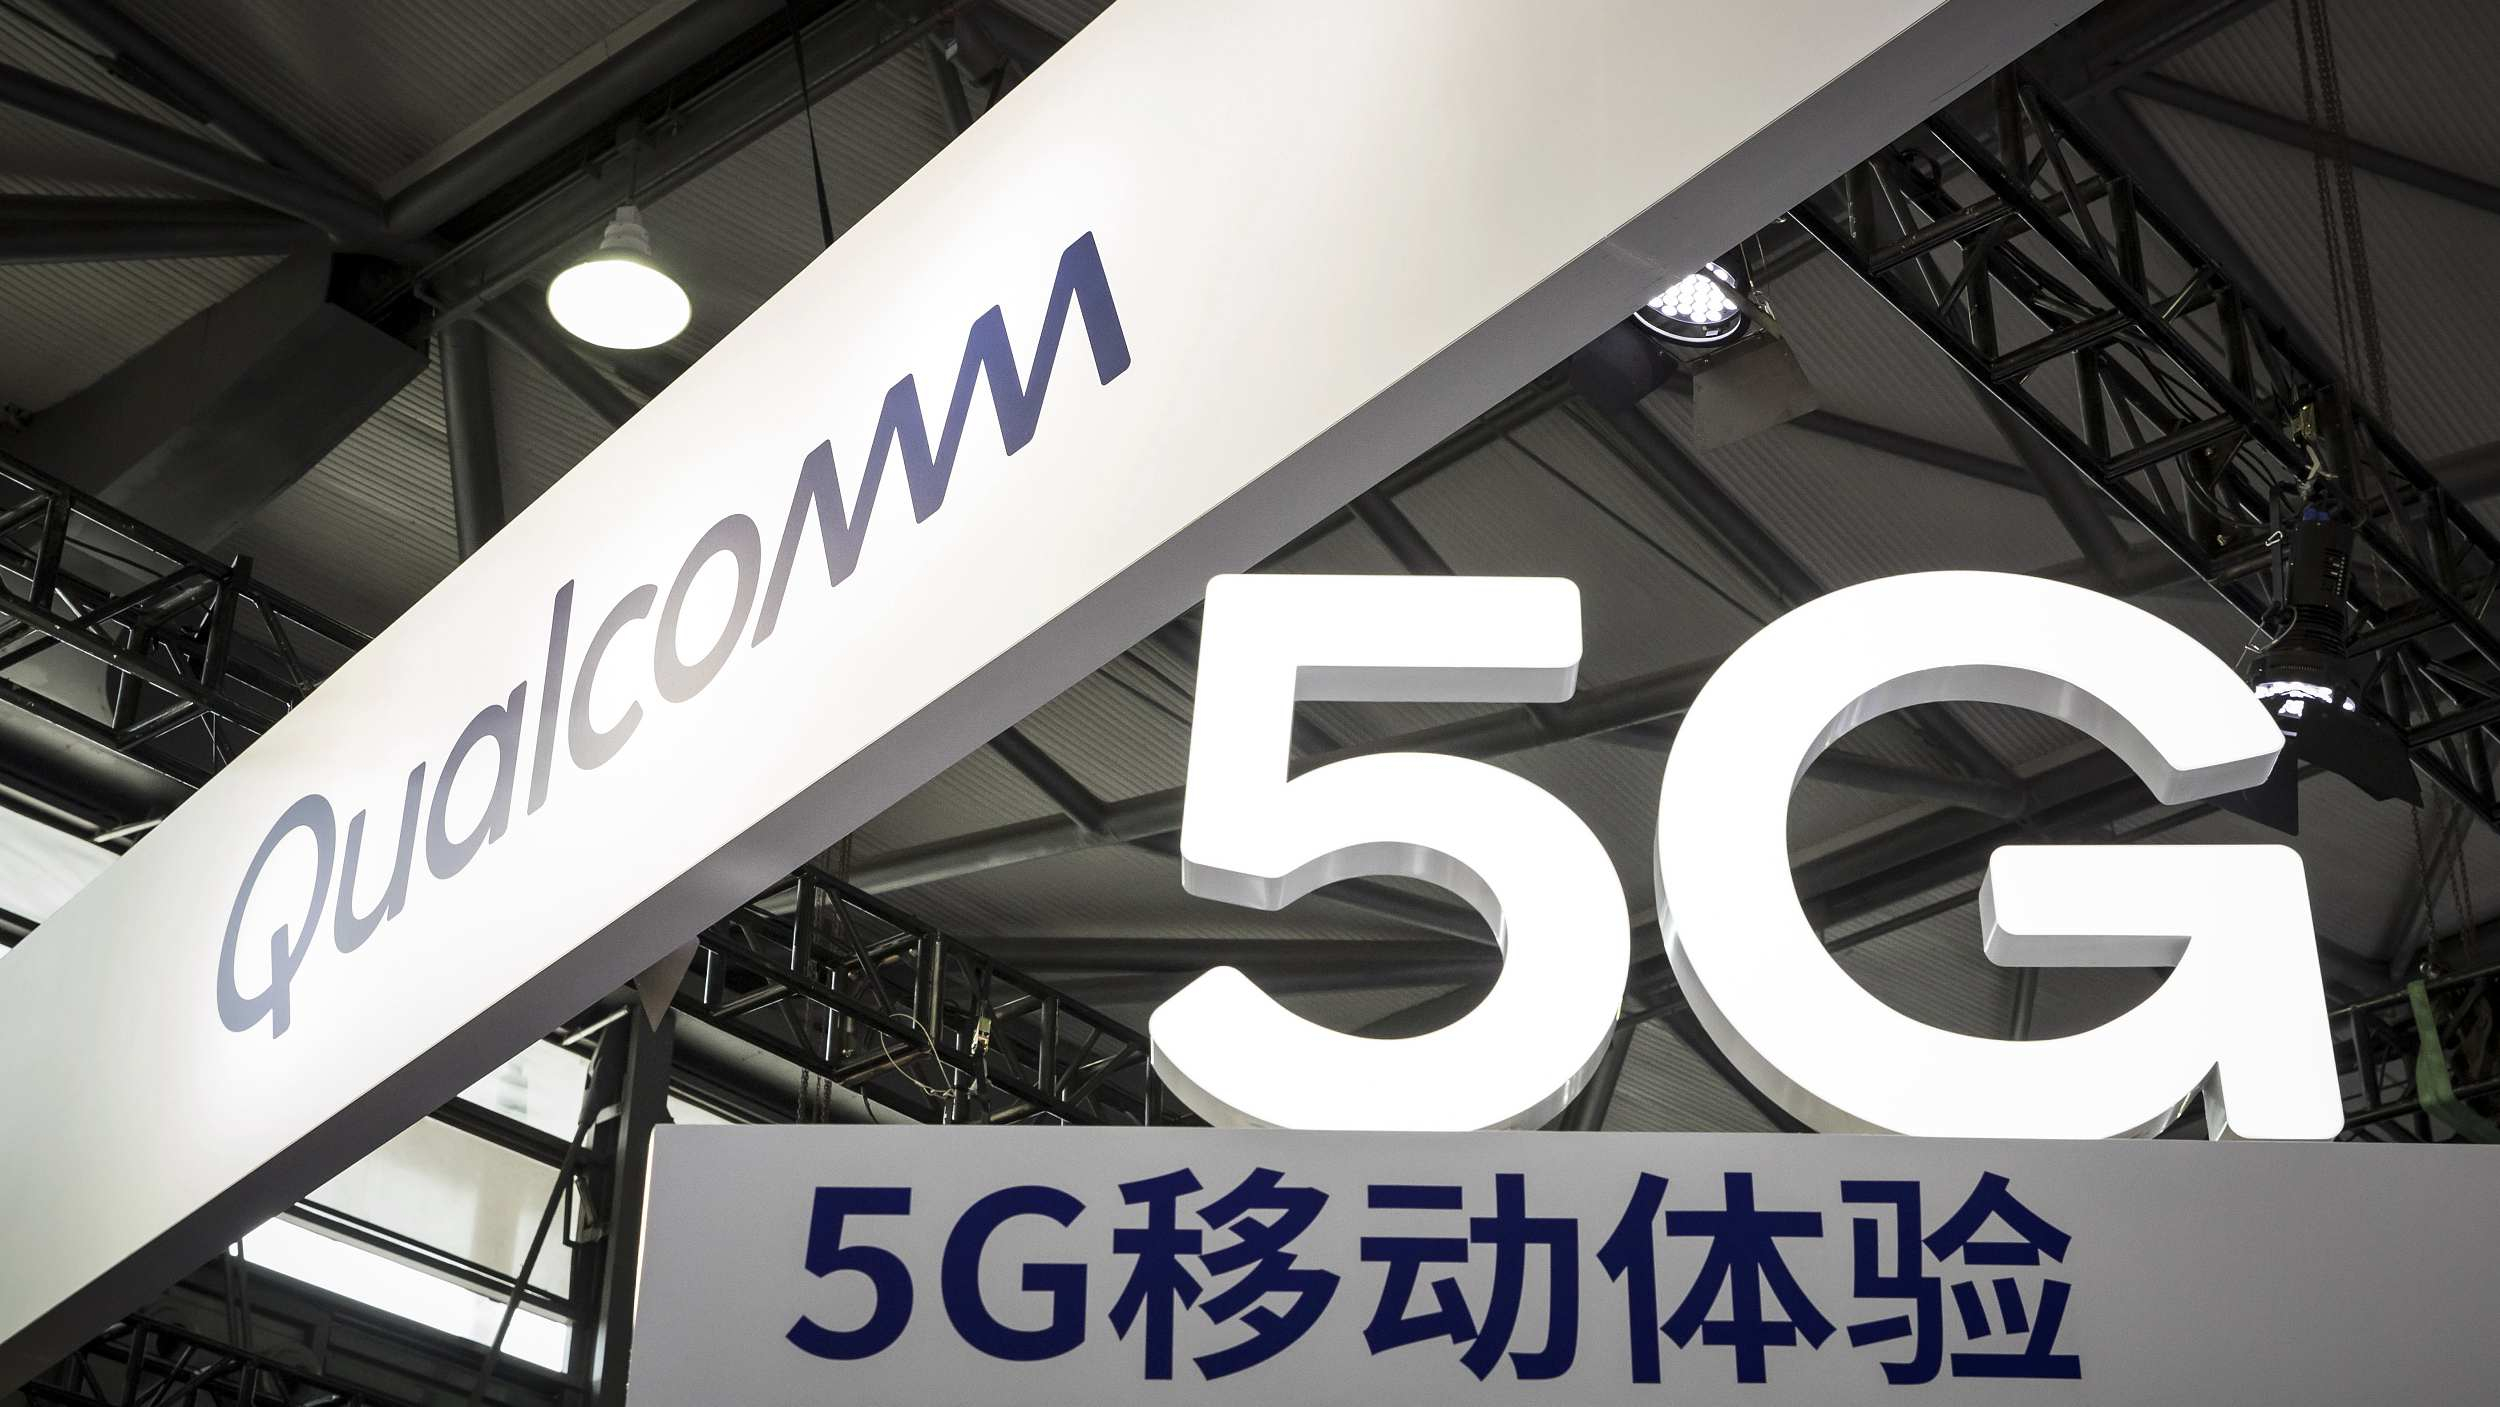 China Mobile to have 300,000 5G base stations in 2020